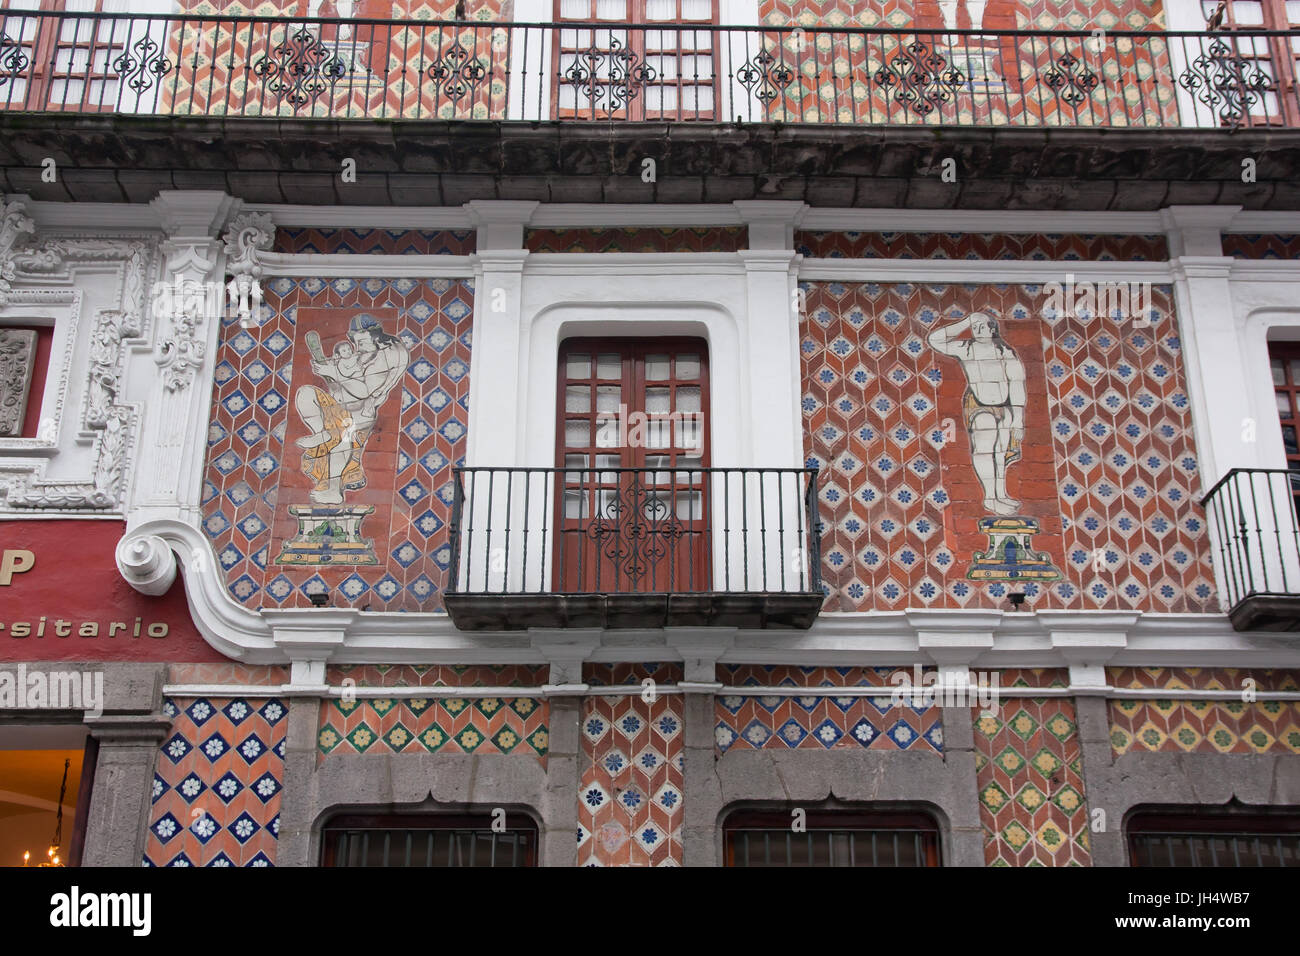 classic facade in Puebla University building - Stock Image